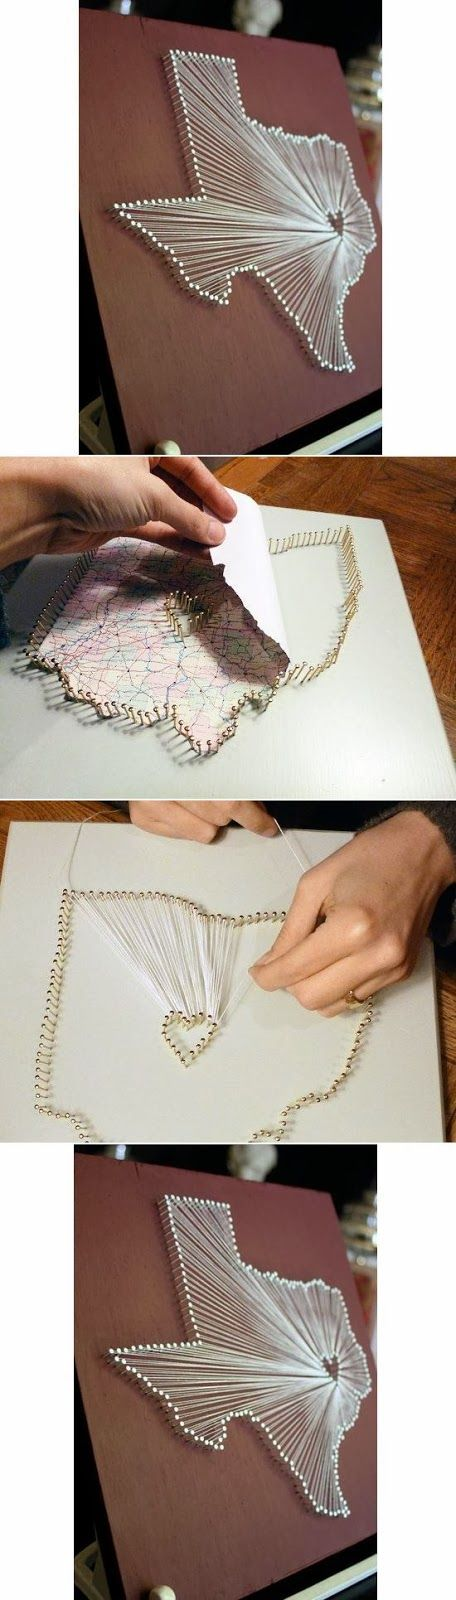 Great and simple DIY project for you favorite trips. Map it out in string. #travel #memorabilia #map